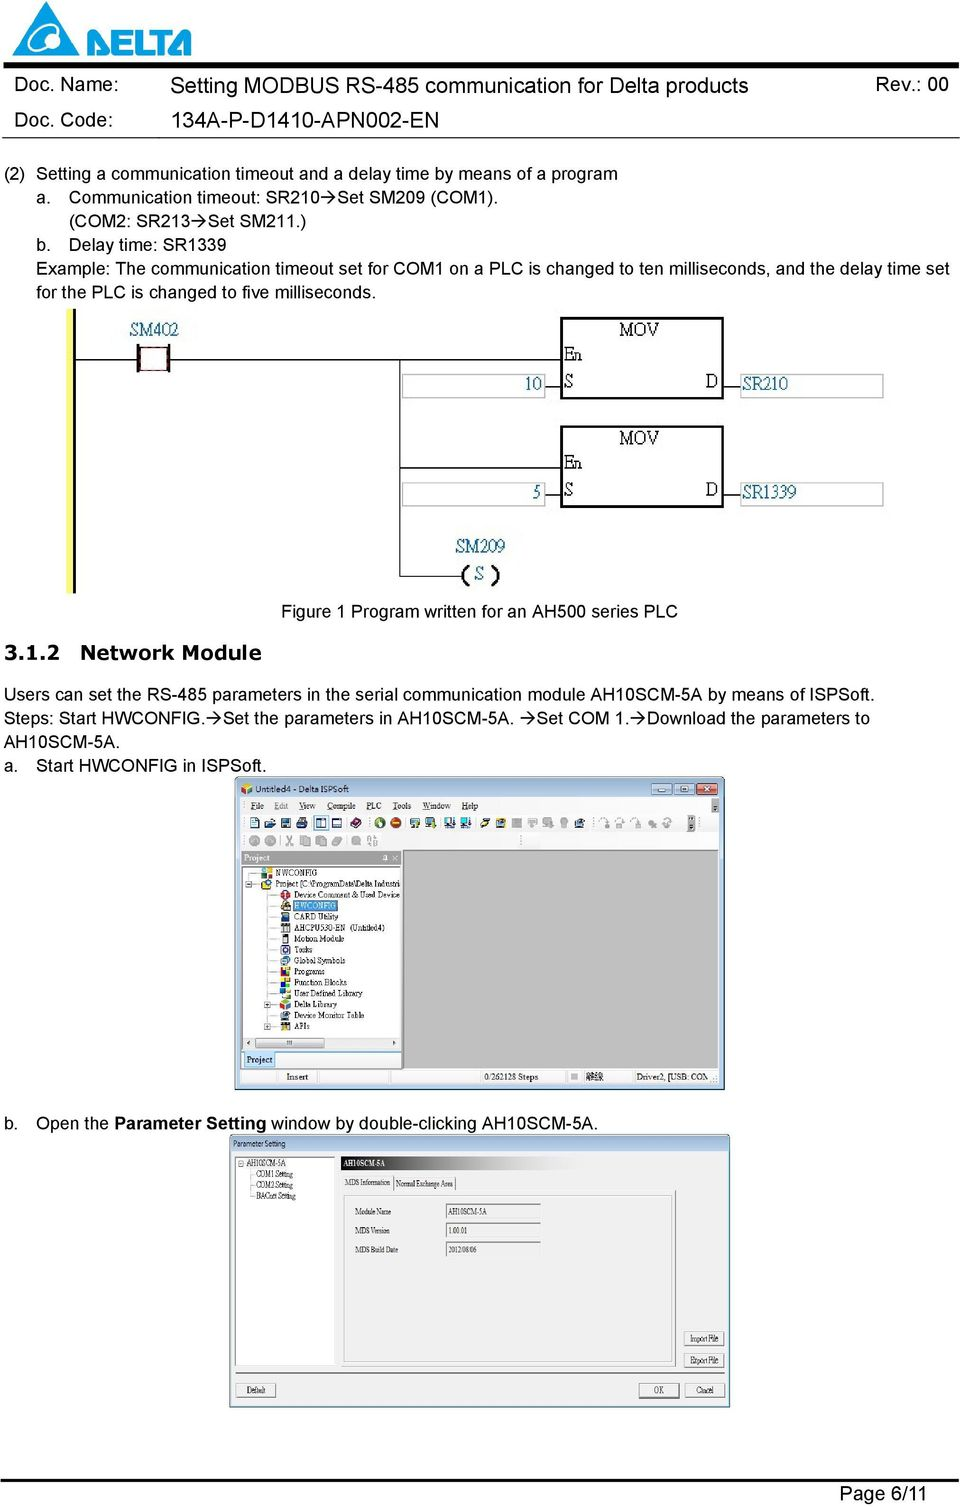 Topic: Setting MODBUS RS-485 Communication for Detla